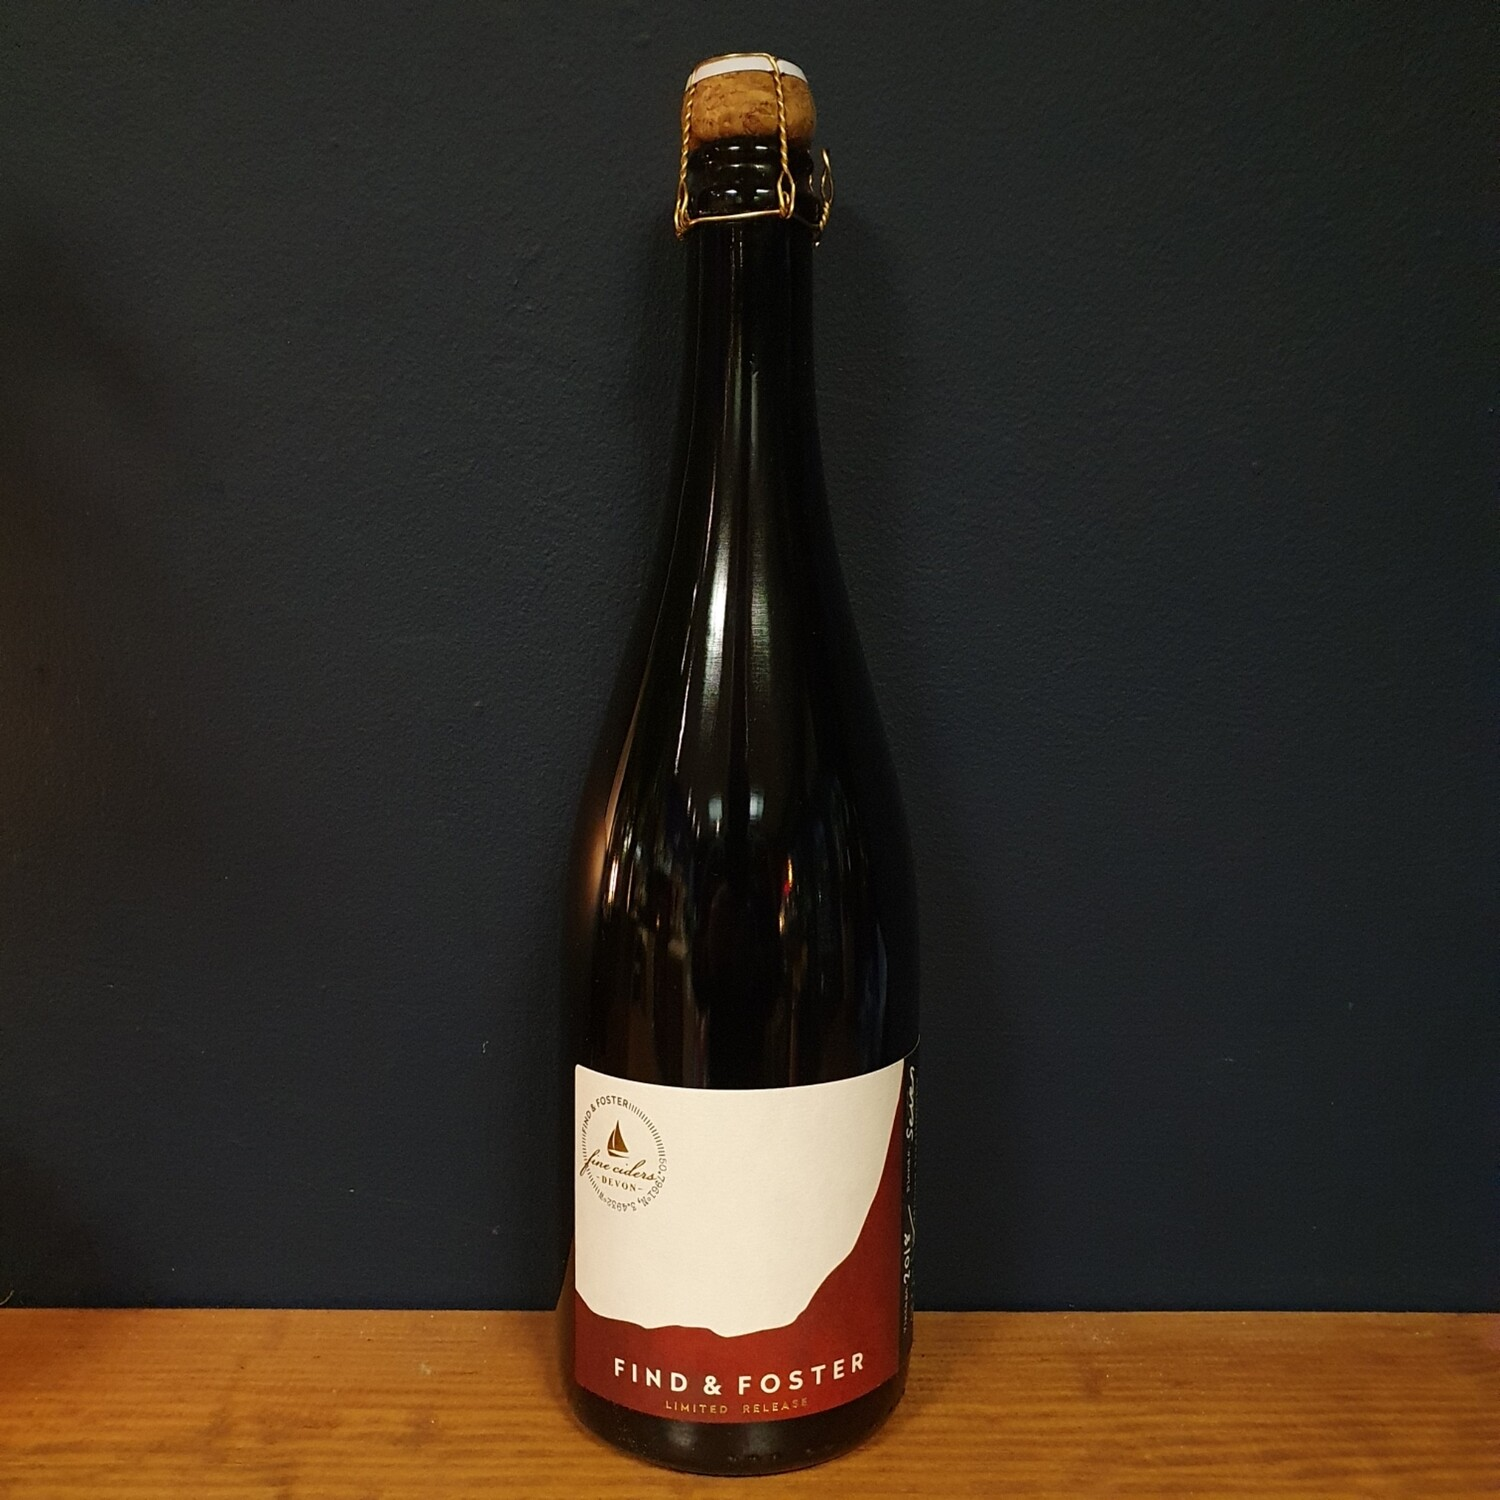 Find and Foster - Seven 2018 (750ml)